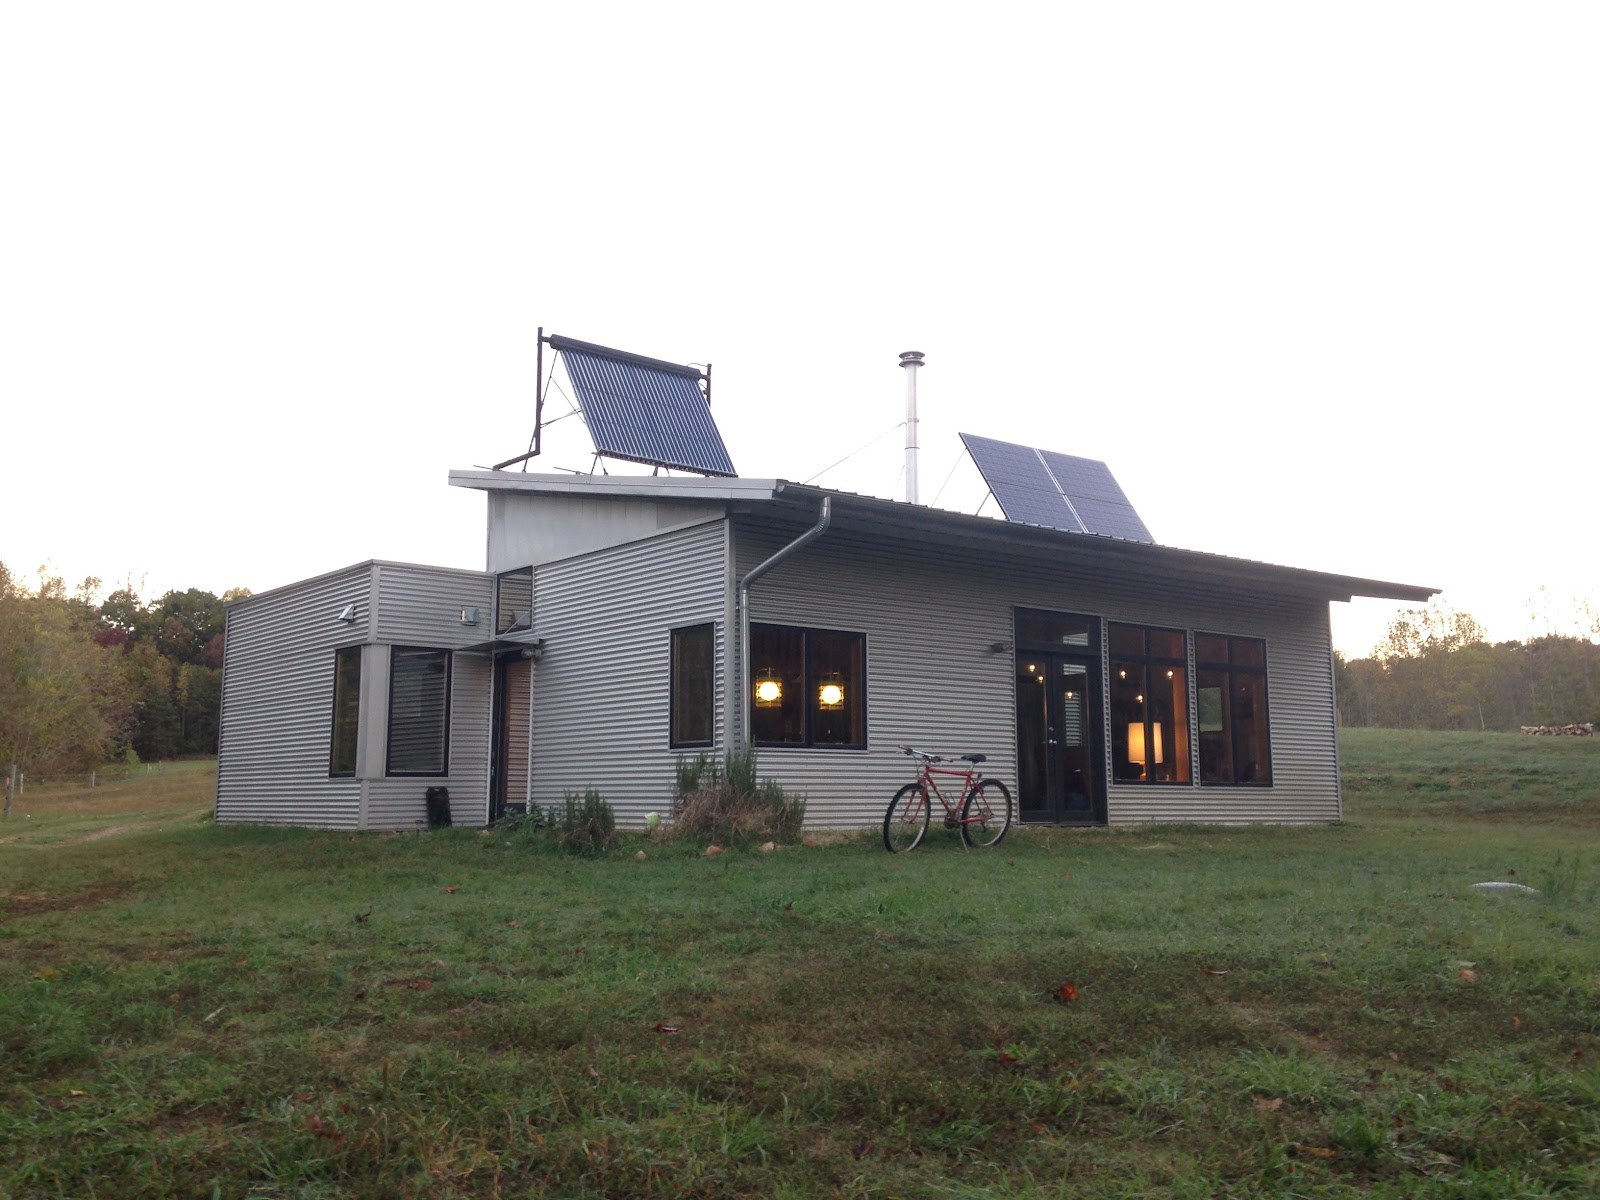 Passive solar sip prefab house has city sister visit for Passive solar prefab homes